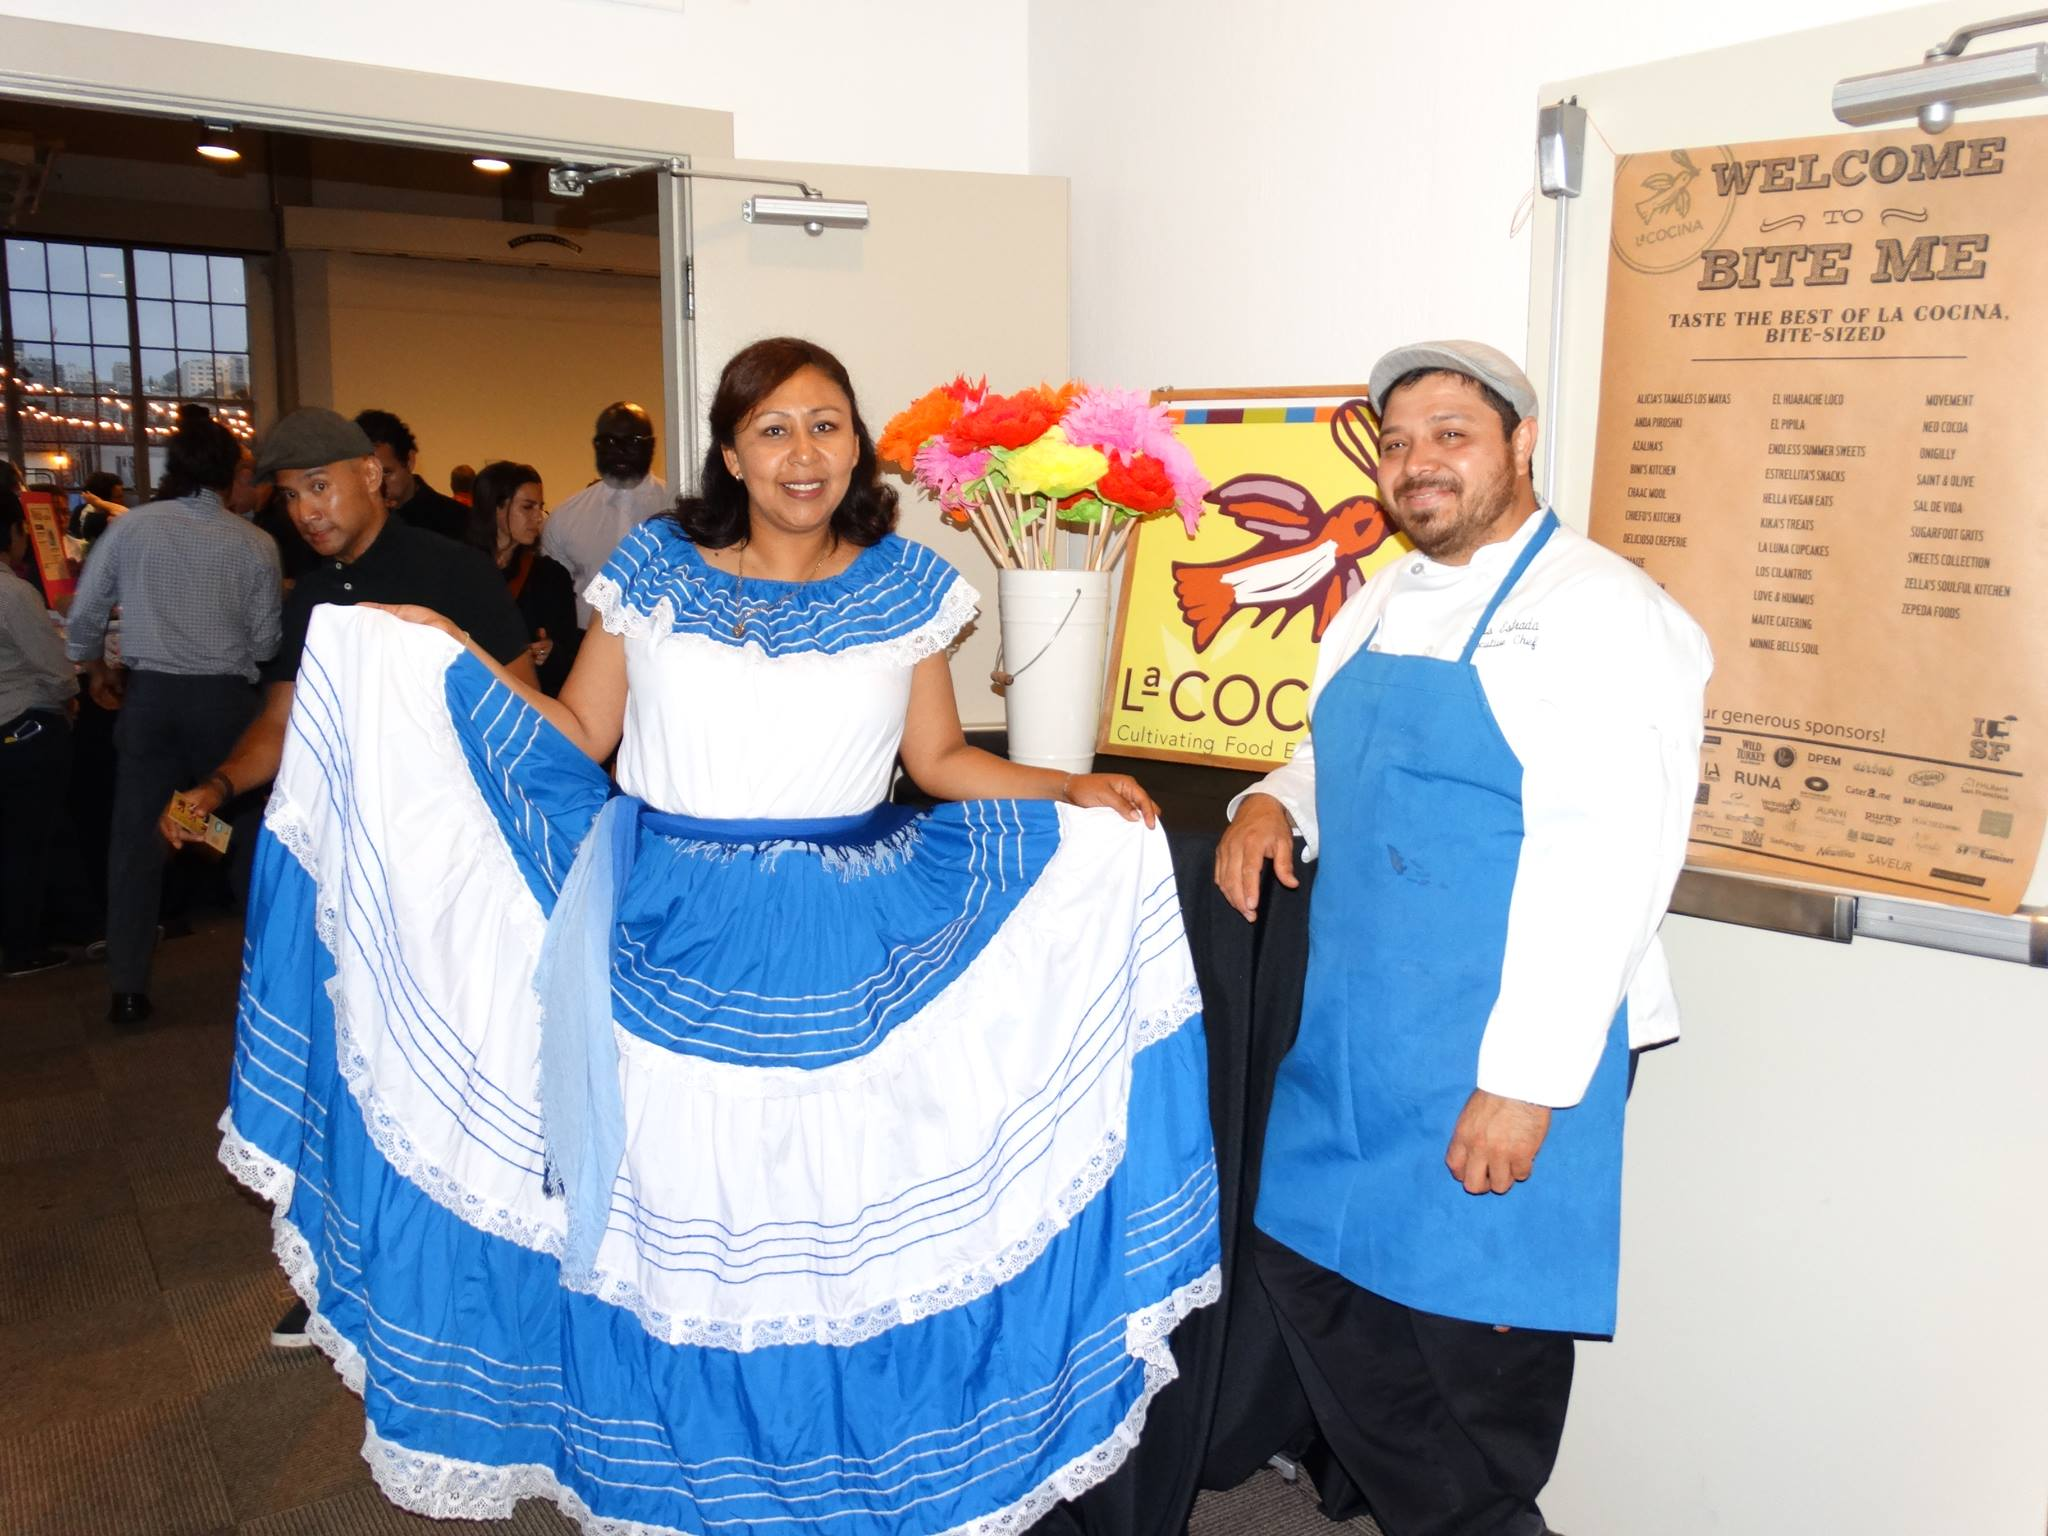 D'Maize is one of dozens of La Cocina businesses sharing their culture through food on both sides of the Bay.